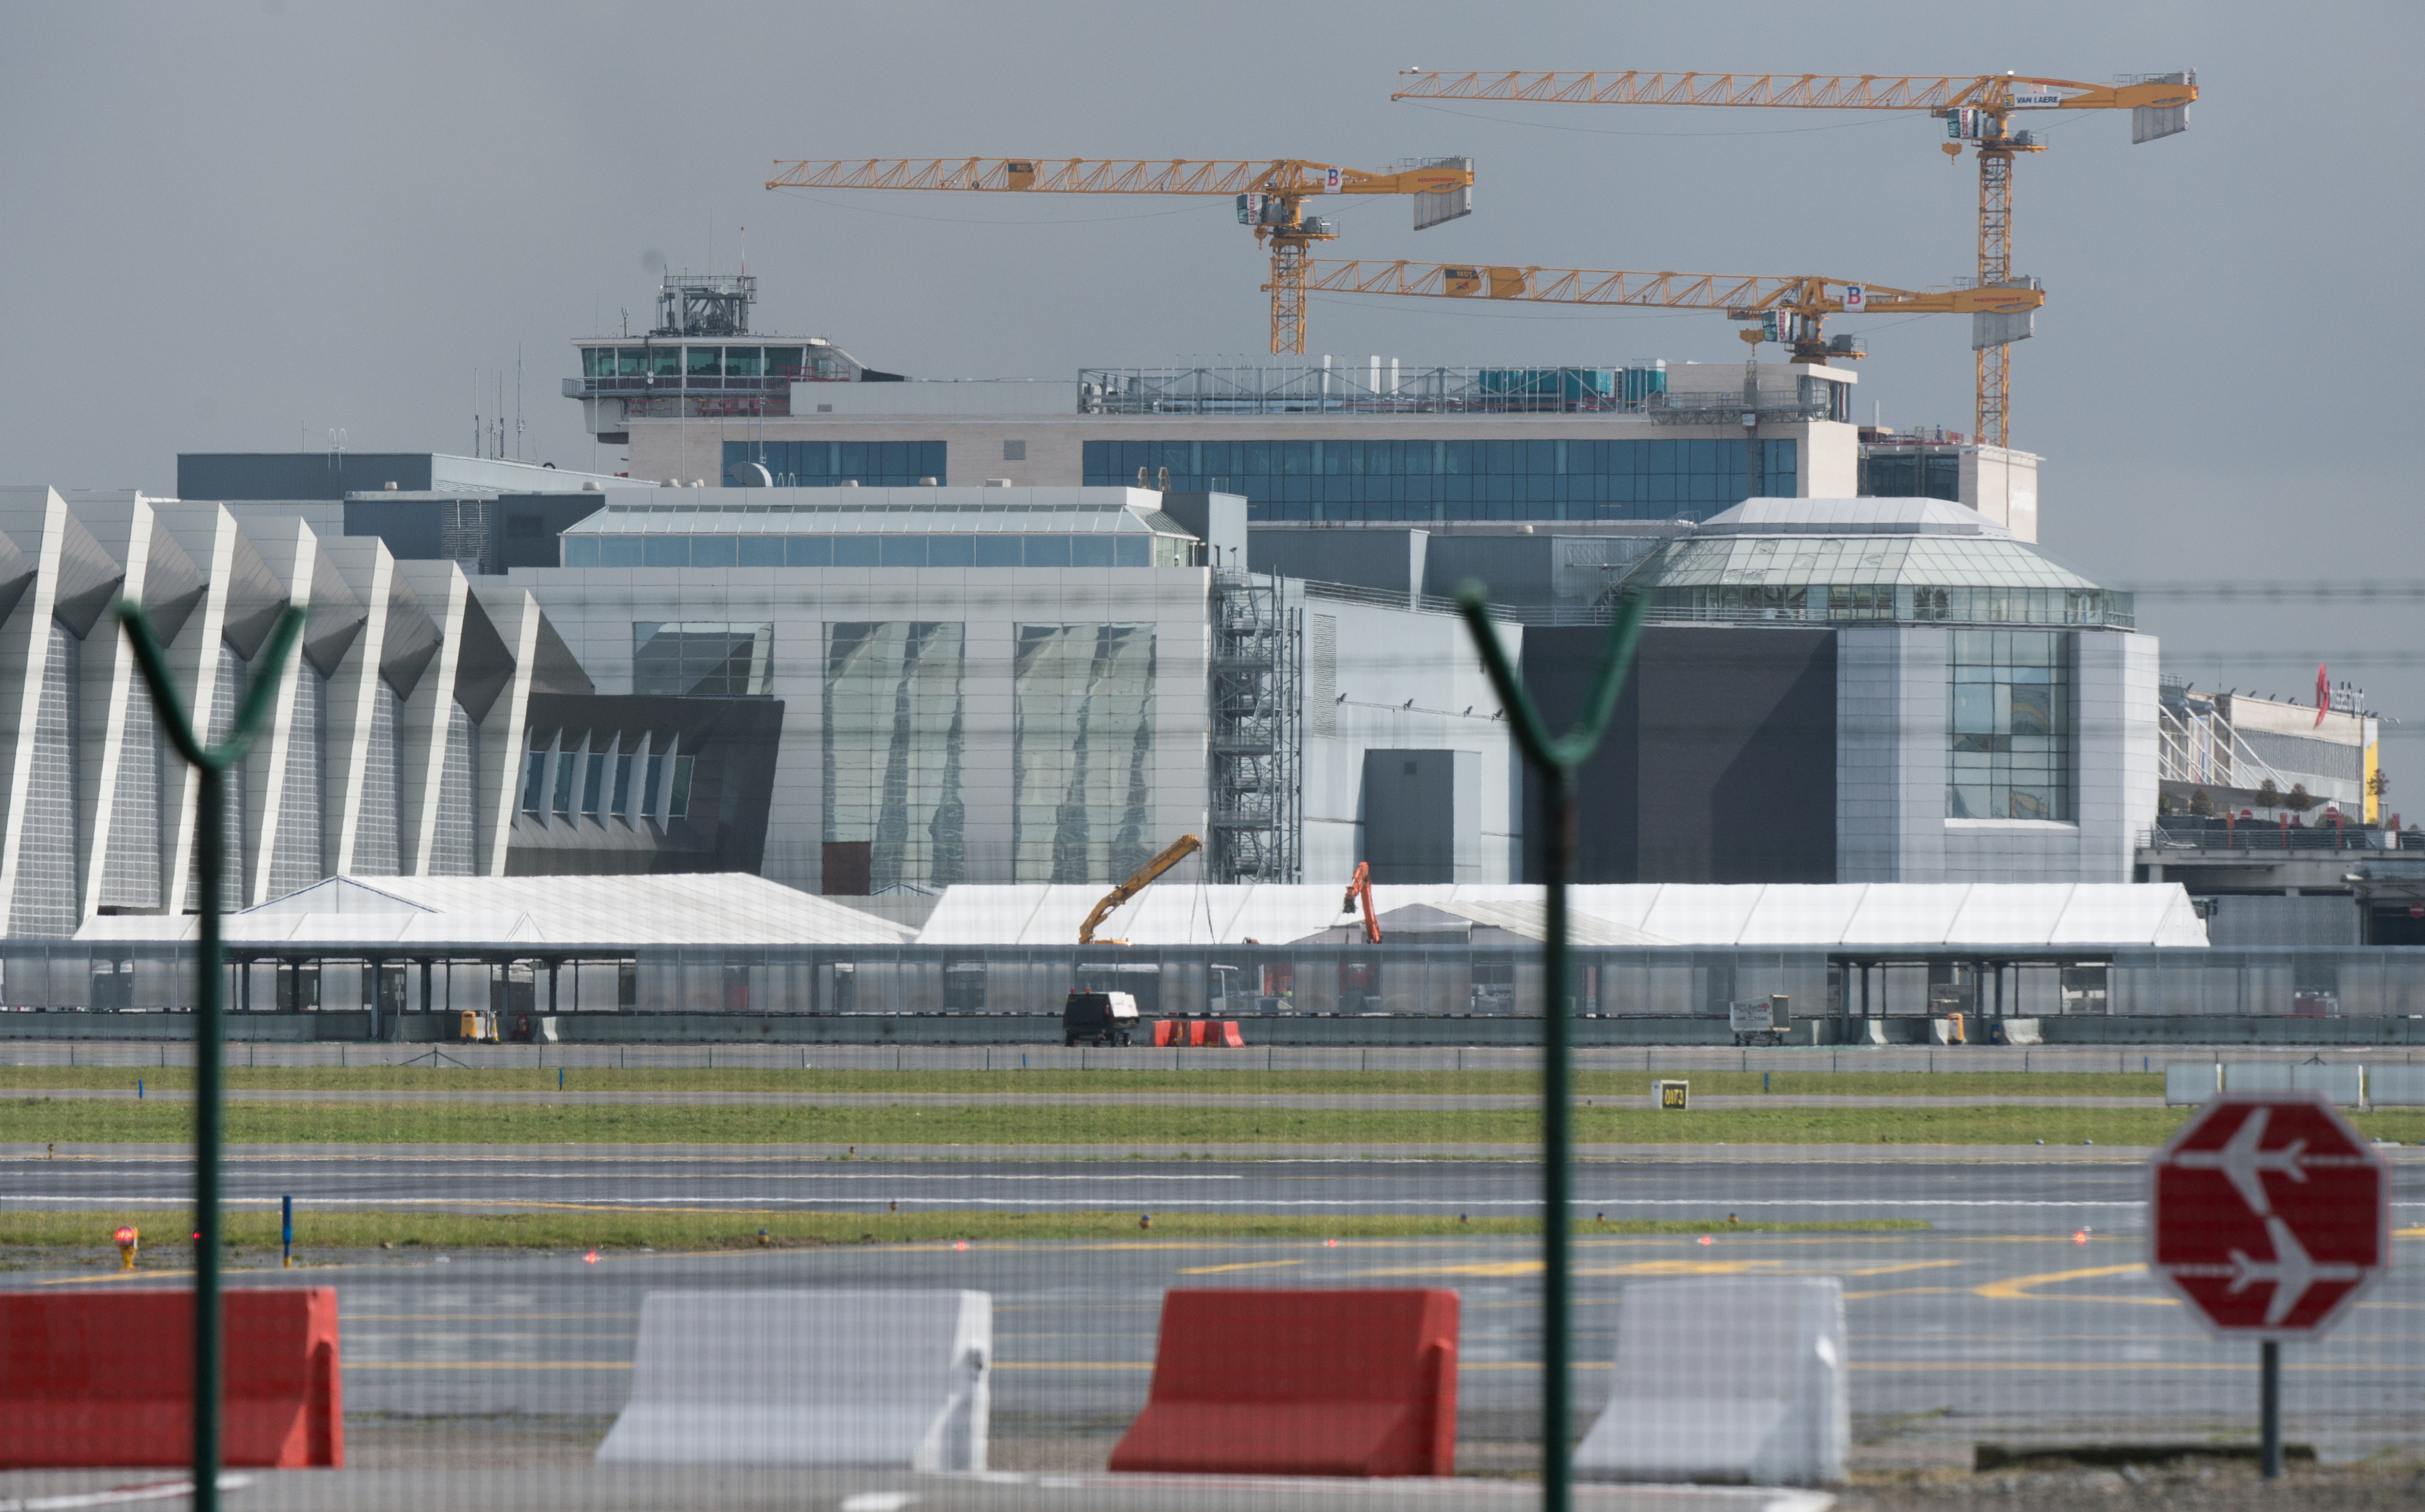 A picture taken on March 29, 2016 in Zaventem shows tents at Brussels Airport, where authorities are running a series of tests to see if makeshift check-in facilities are good enough to restart some flights and that repair work and new security measures are adequate after the deadly March 22 attacks.